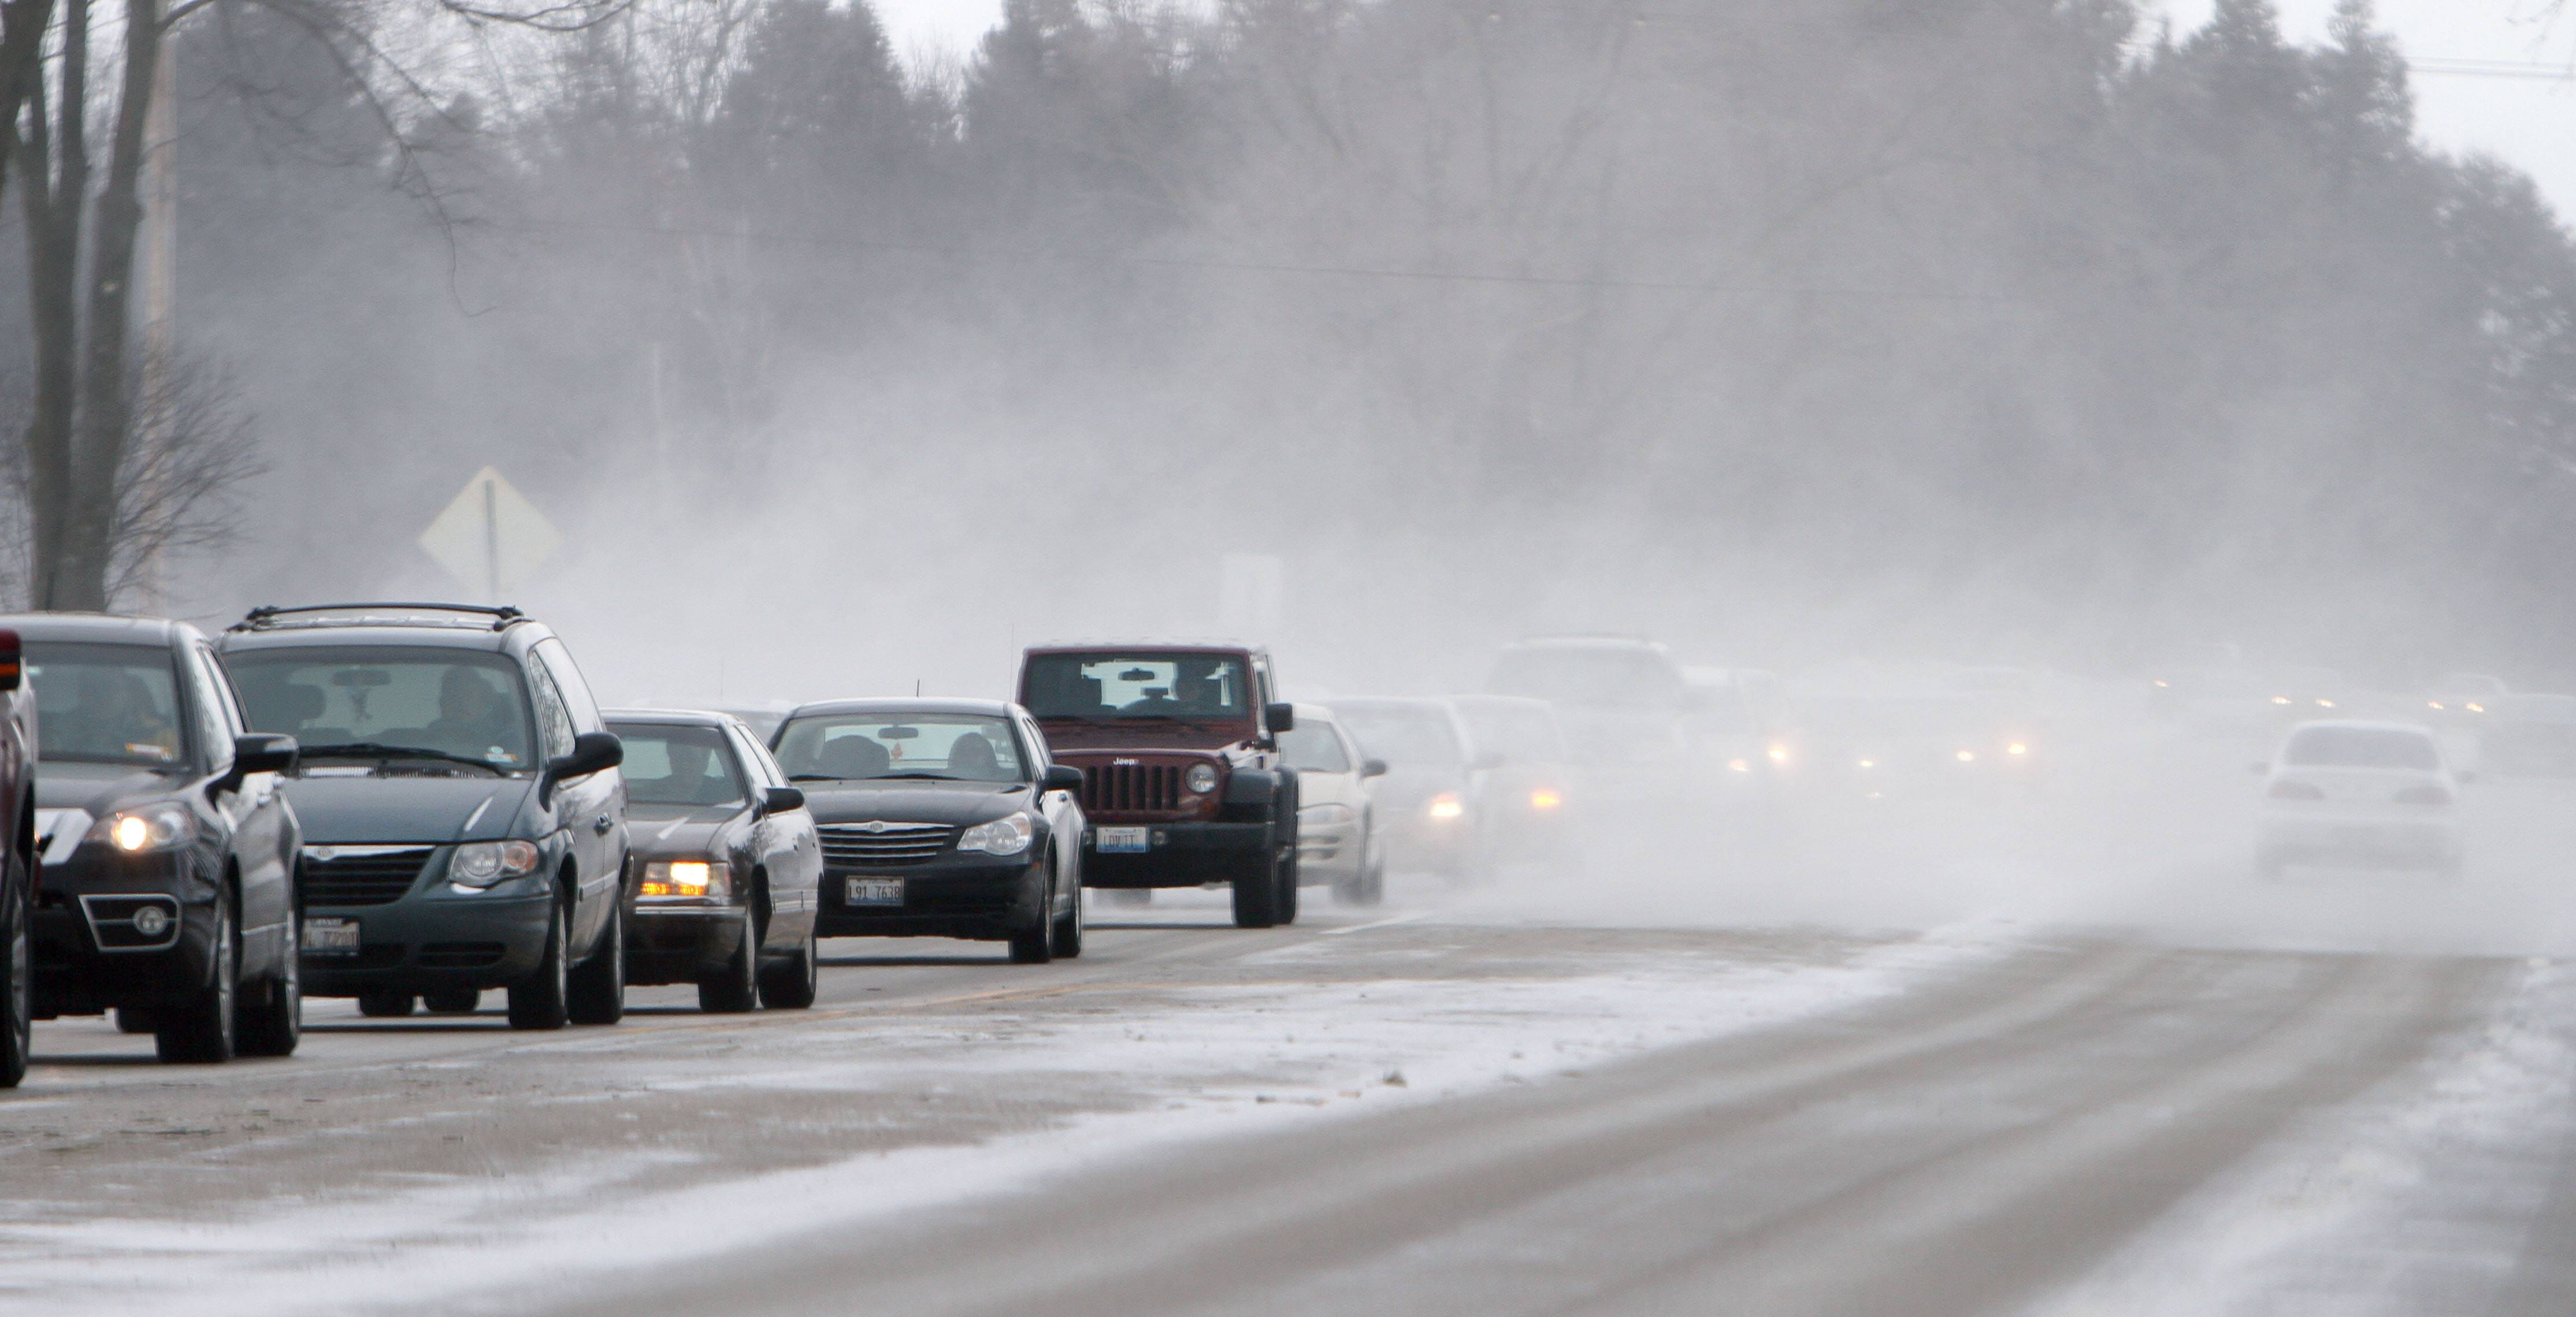 High winds are causing blowing and drifting snow along Butterfield Road in Libertyville Friday.